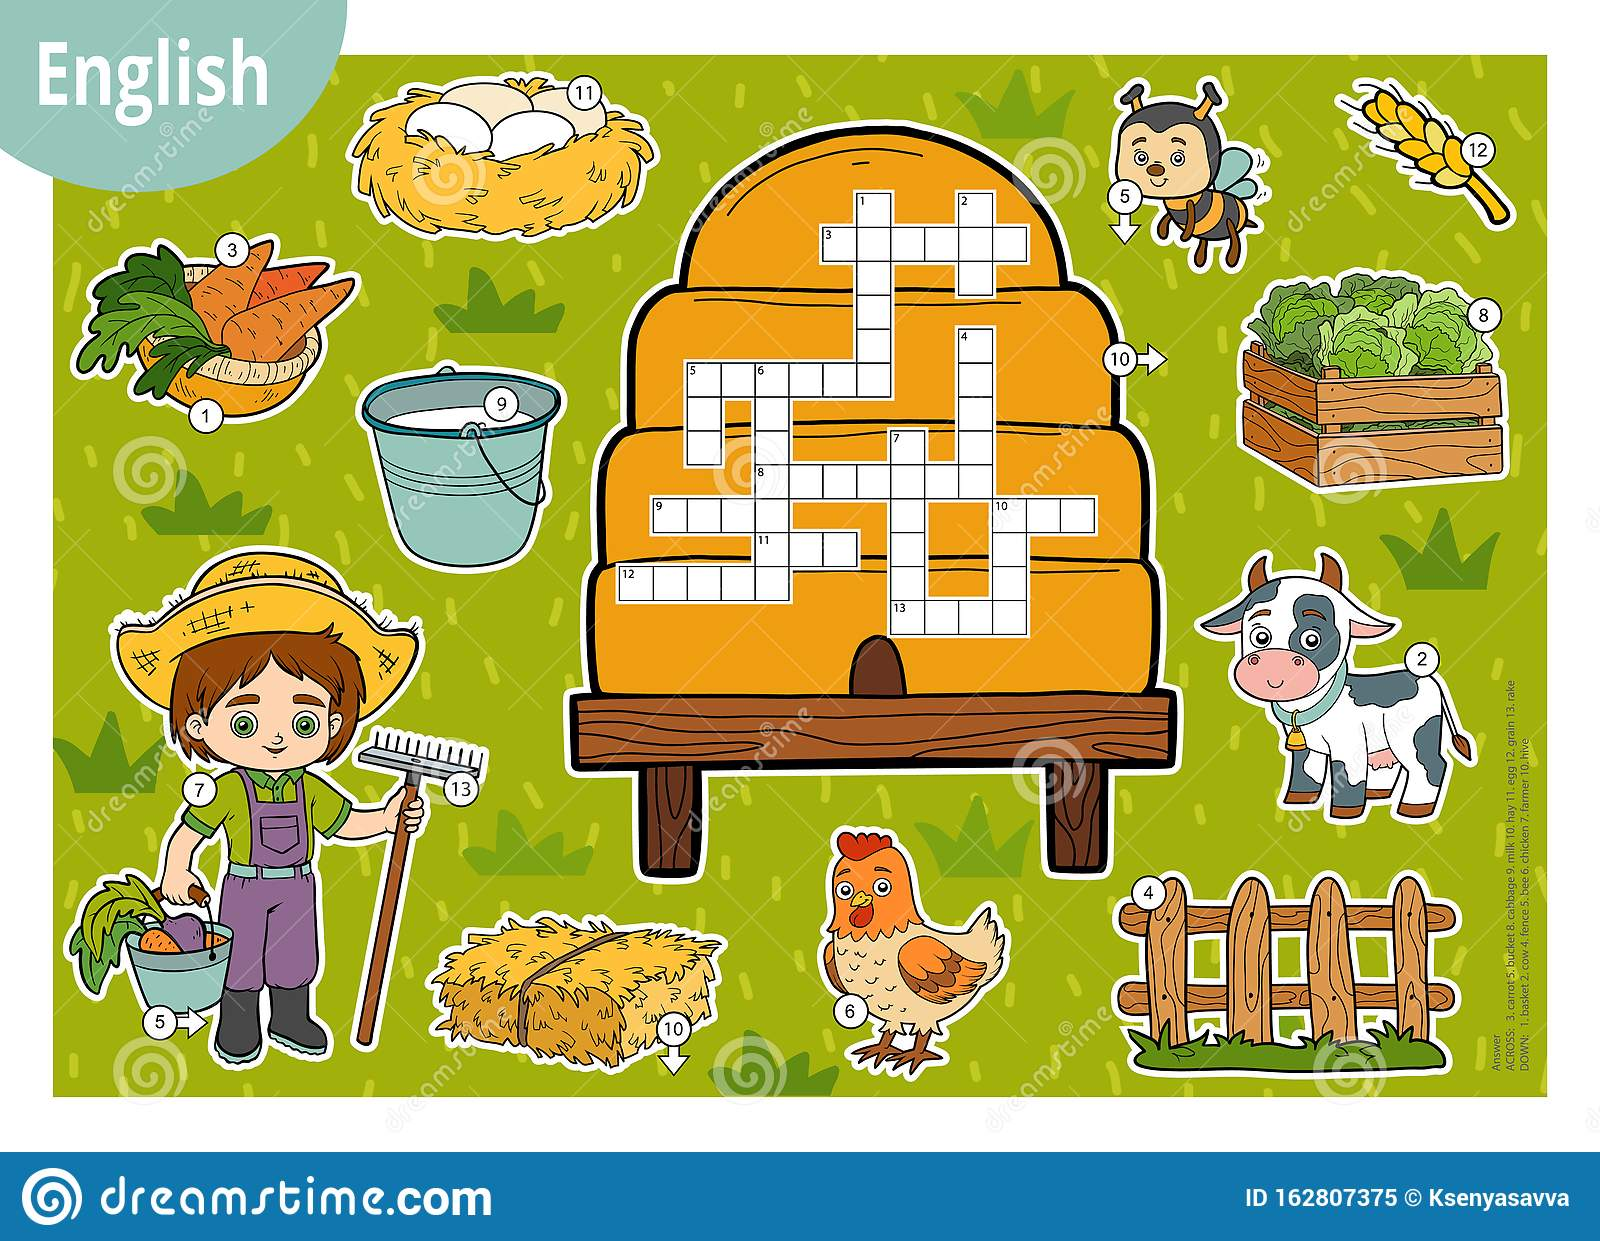 Vector Crossword In English Education Game For Children Cartoon Farm Set Stock Vector Illustration Of Crossword Language 162807375